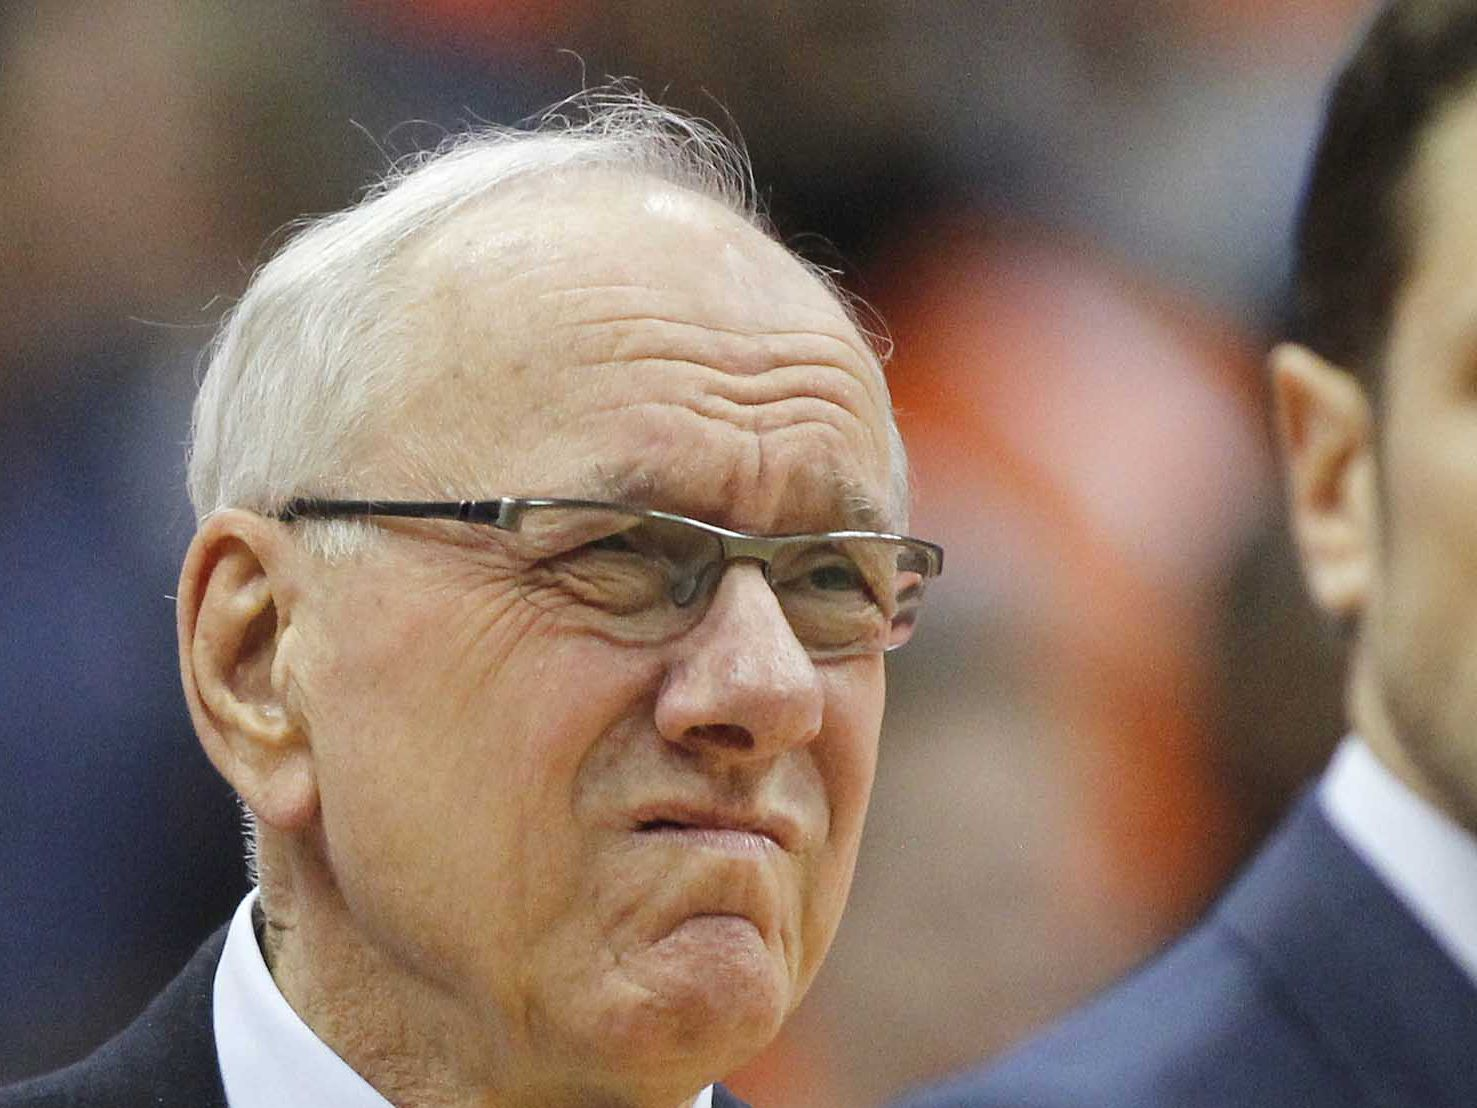 Syracuse coach Jim Boeheim gets loud ovation for Duke game